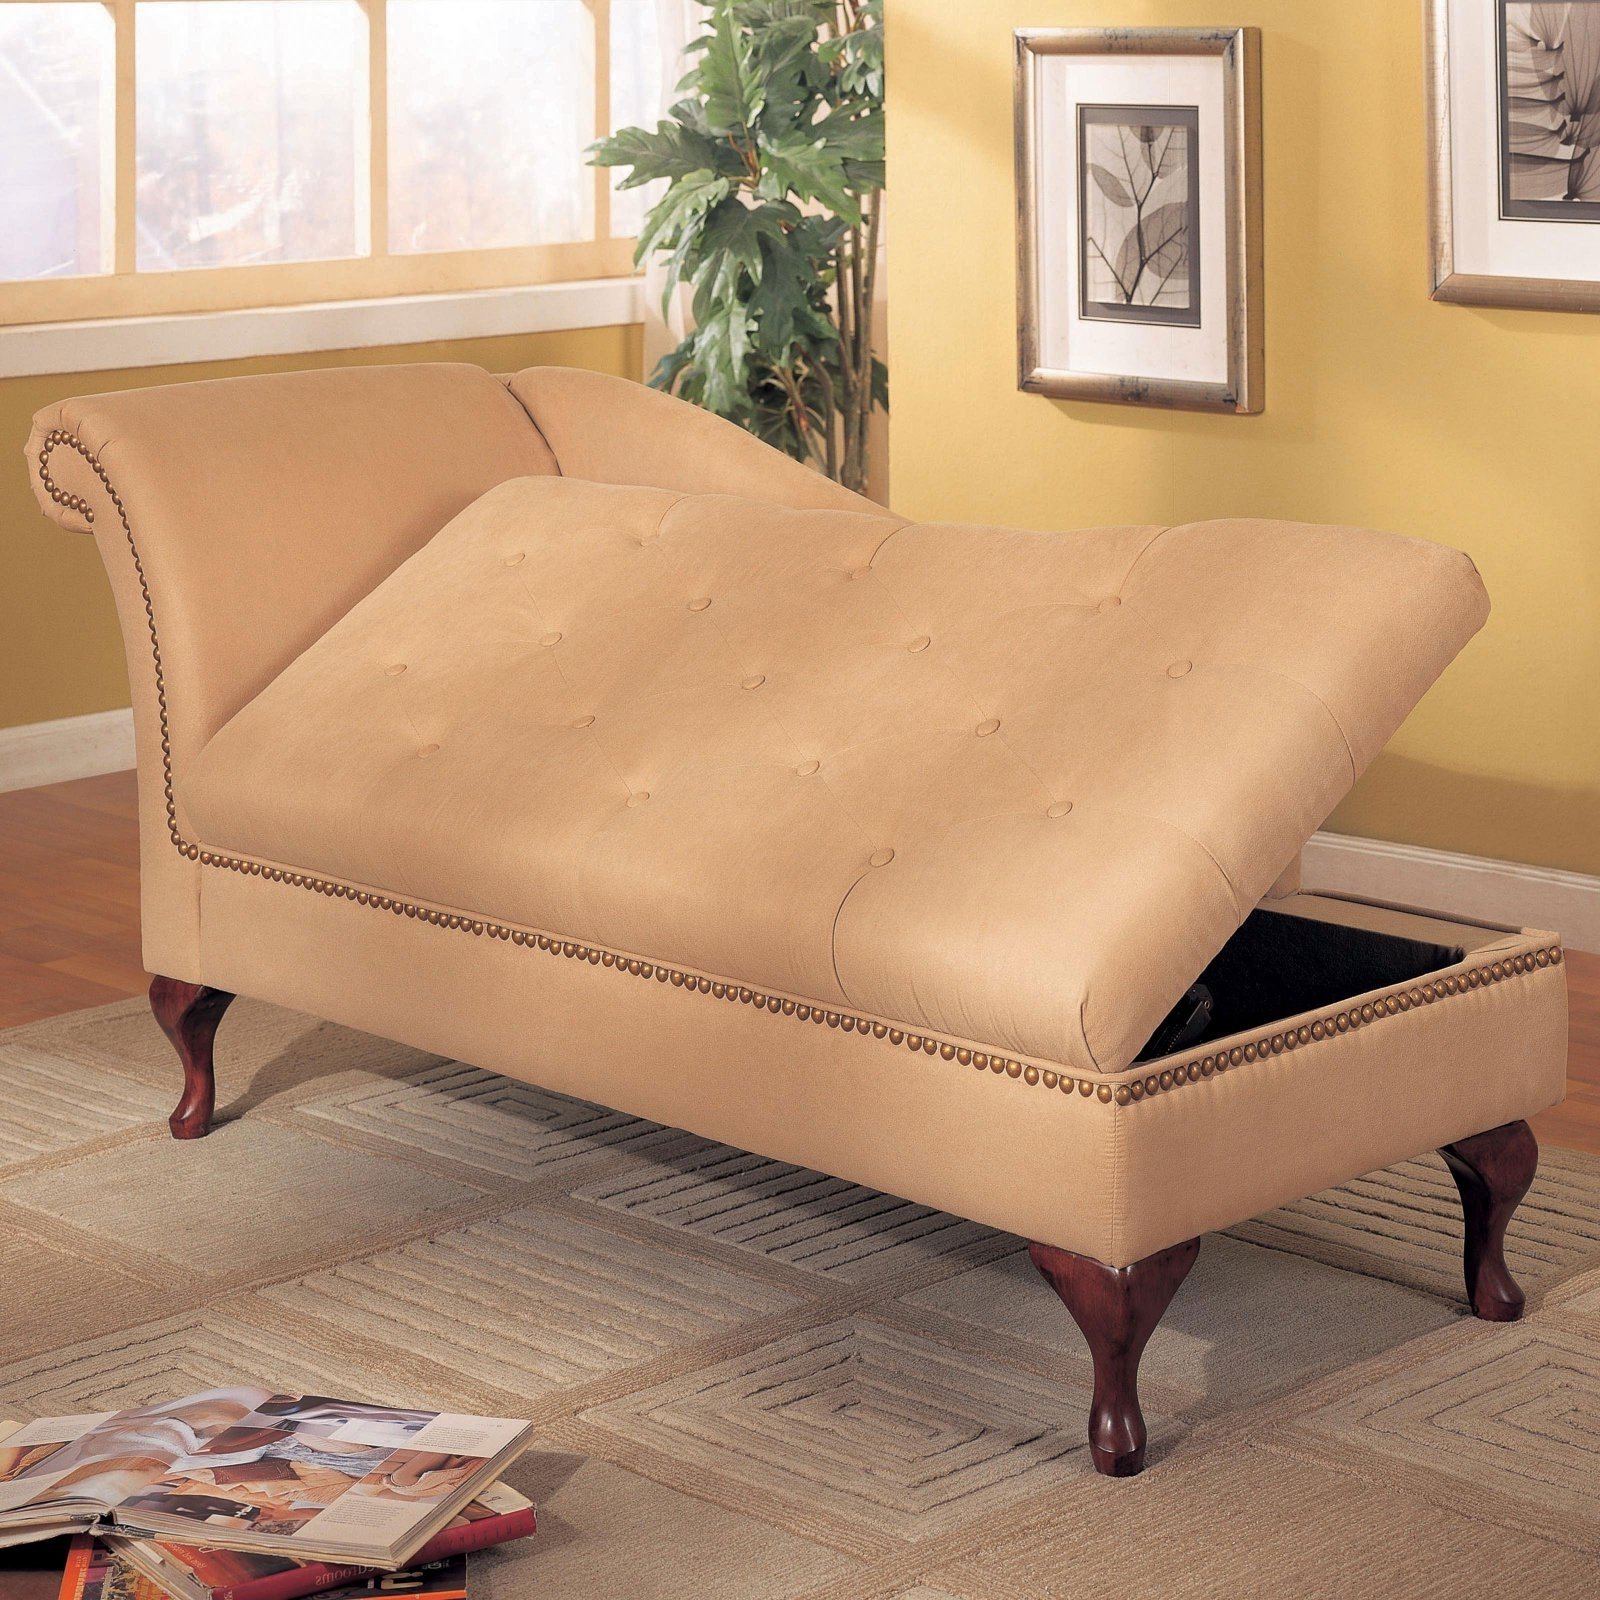 Chaise Lounge Chairs For Small Spaces Regarding Famous Small Chaise Lounge Chair For Room Awesome Bedroom Chairs Ideas (View 3 of 15)